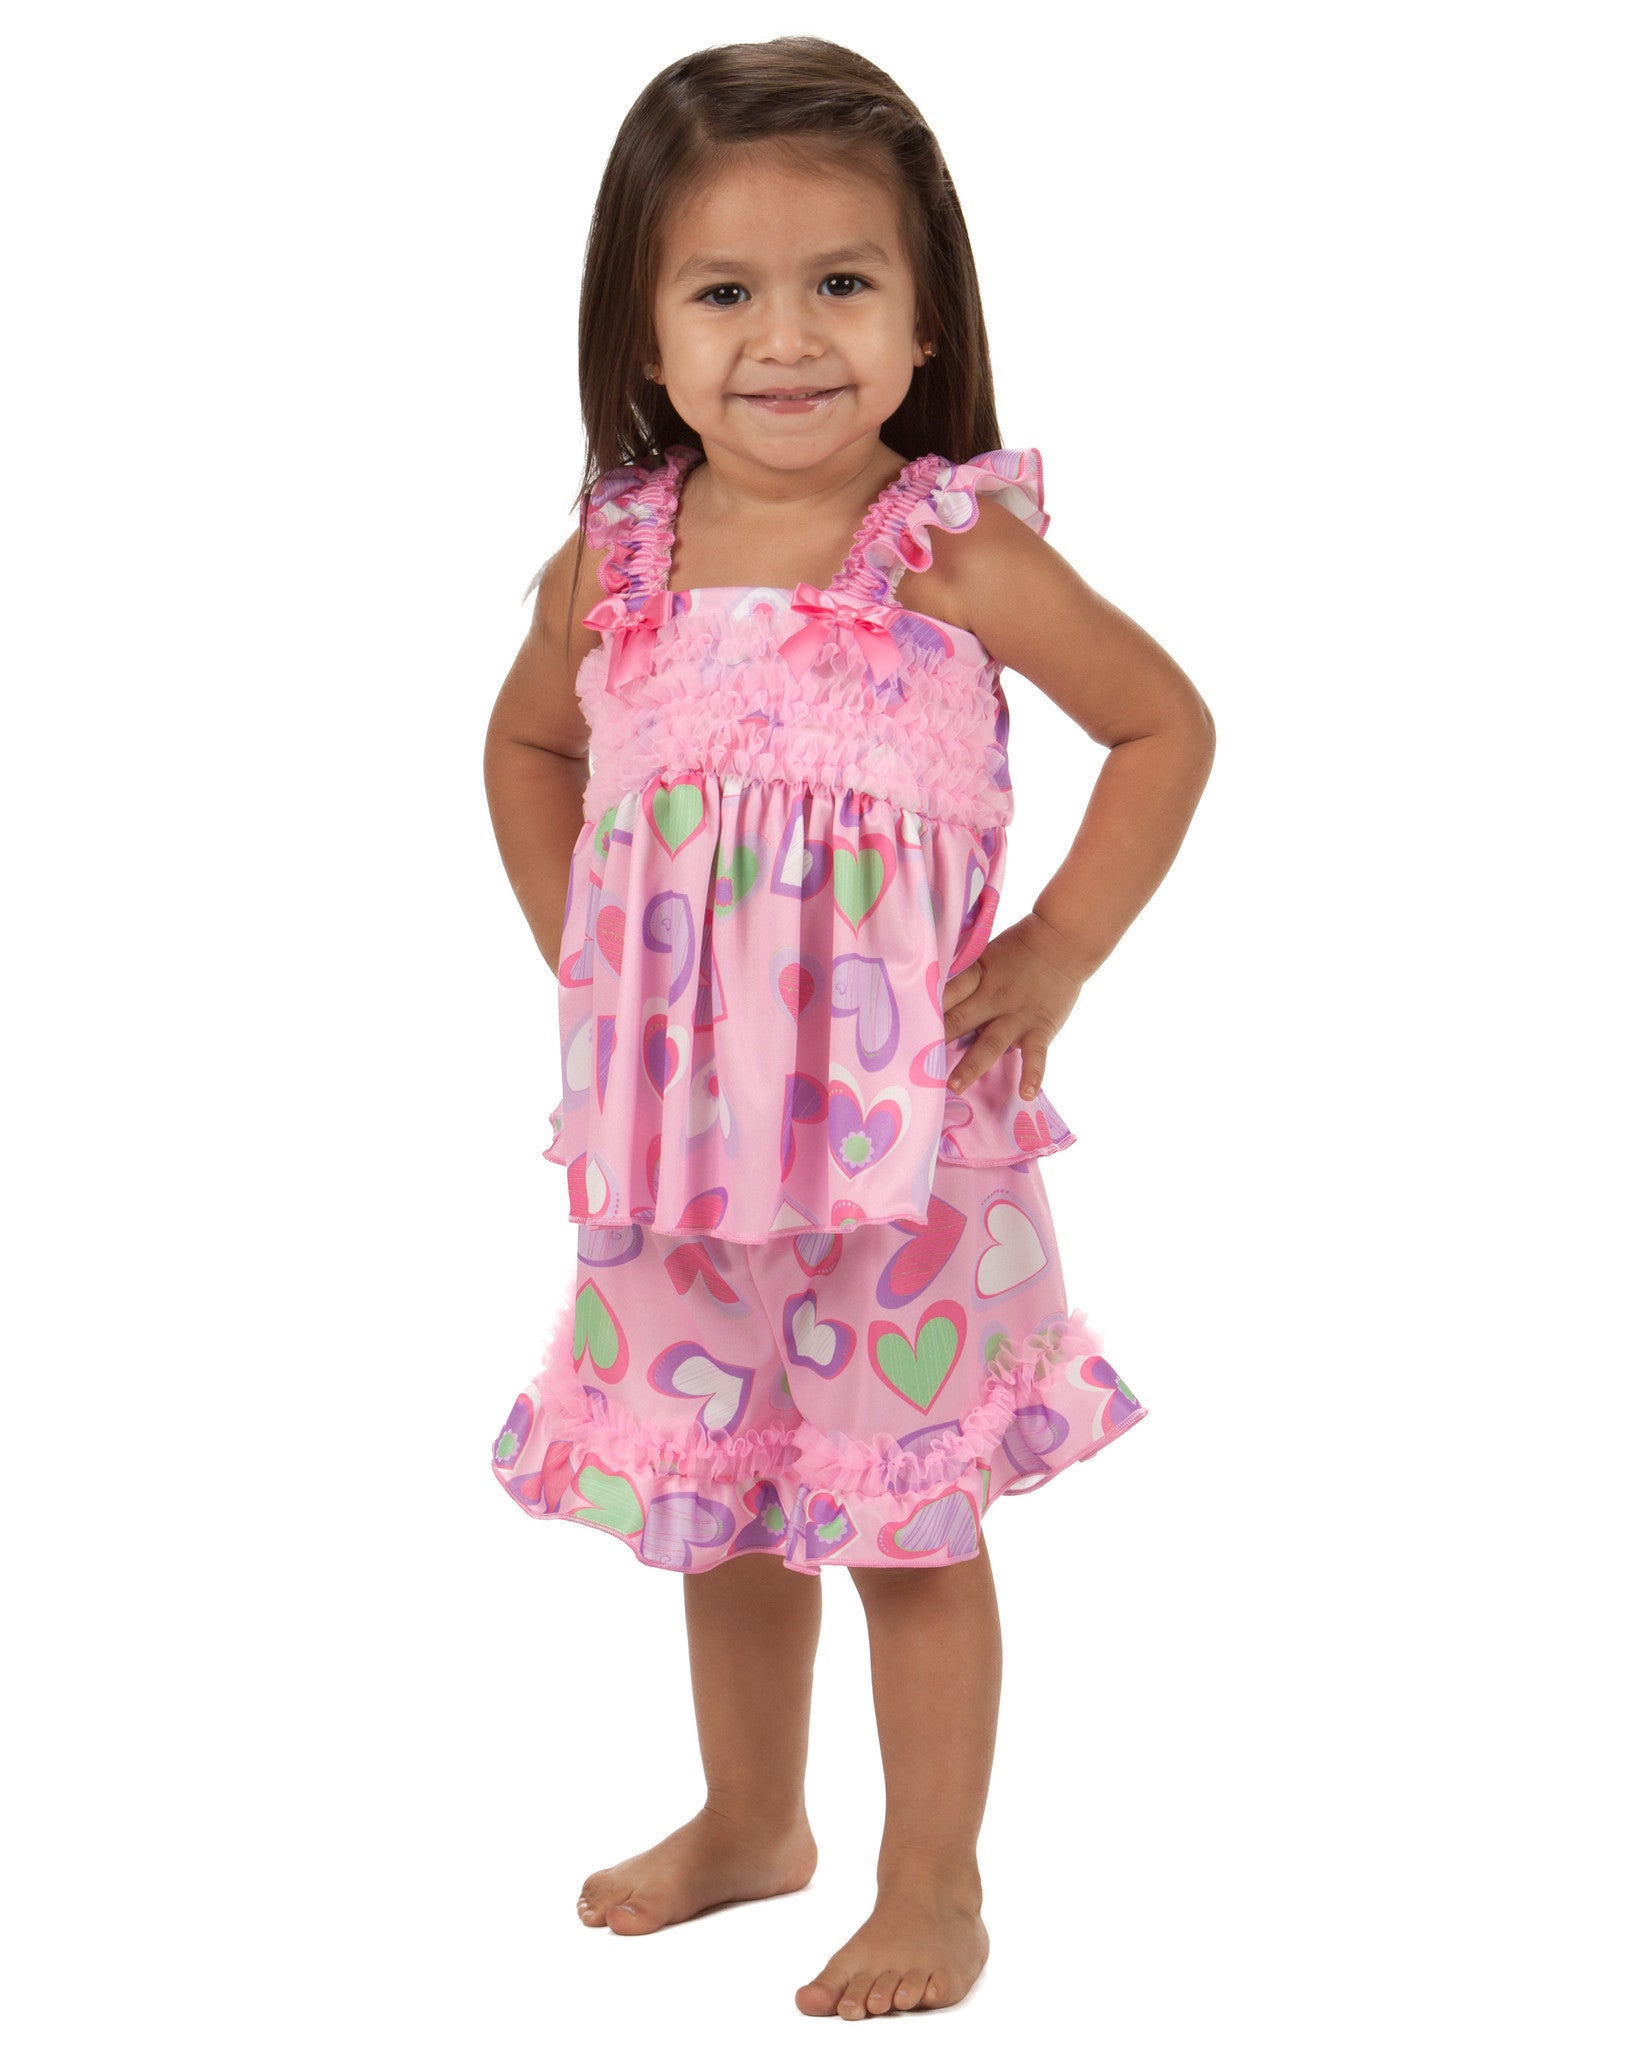 Laura Dare Heart To Heart Frilly Shorty Pajama (6m - 6x)